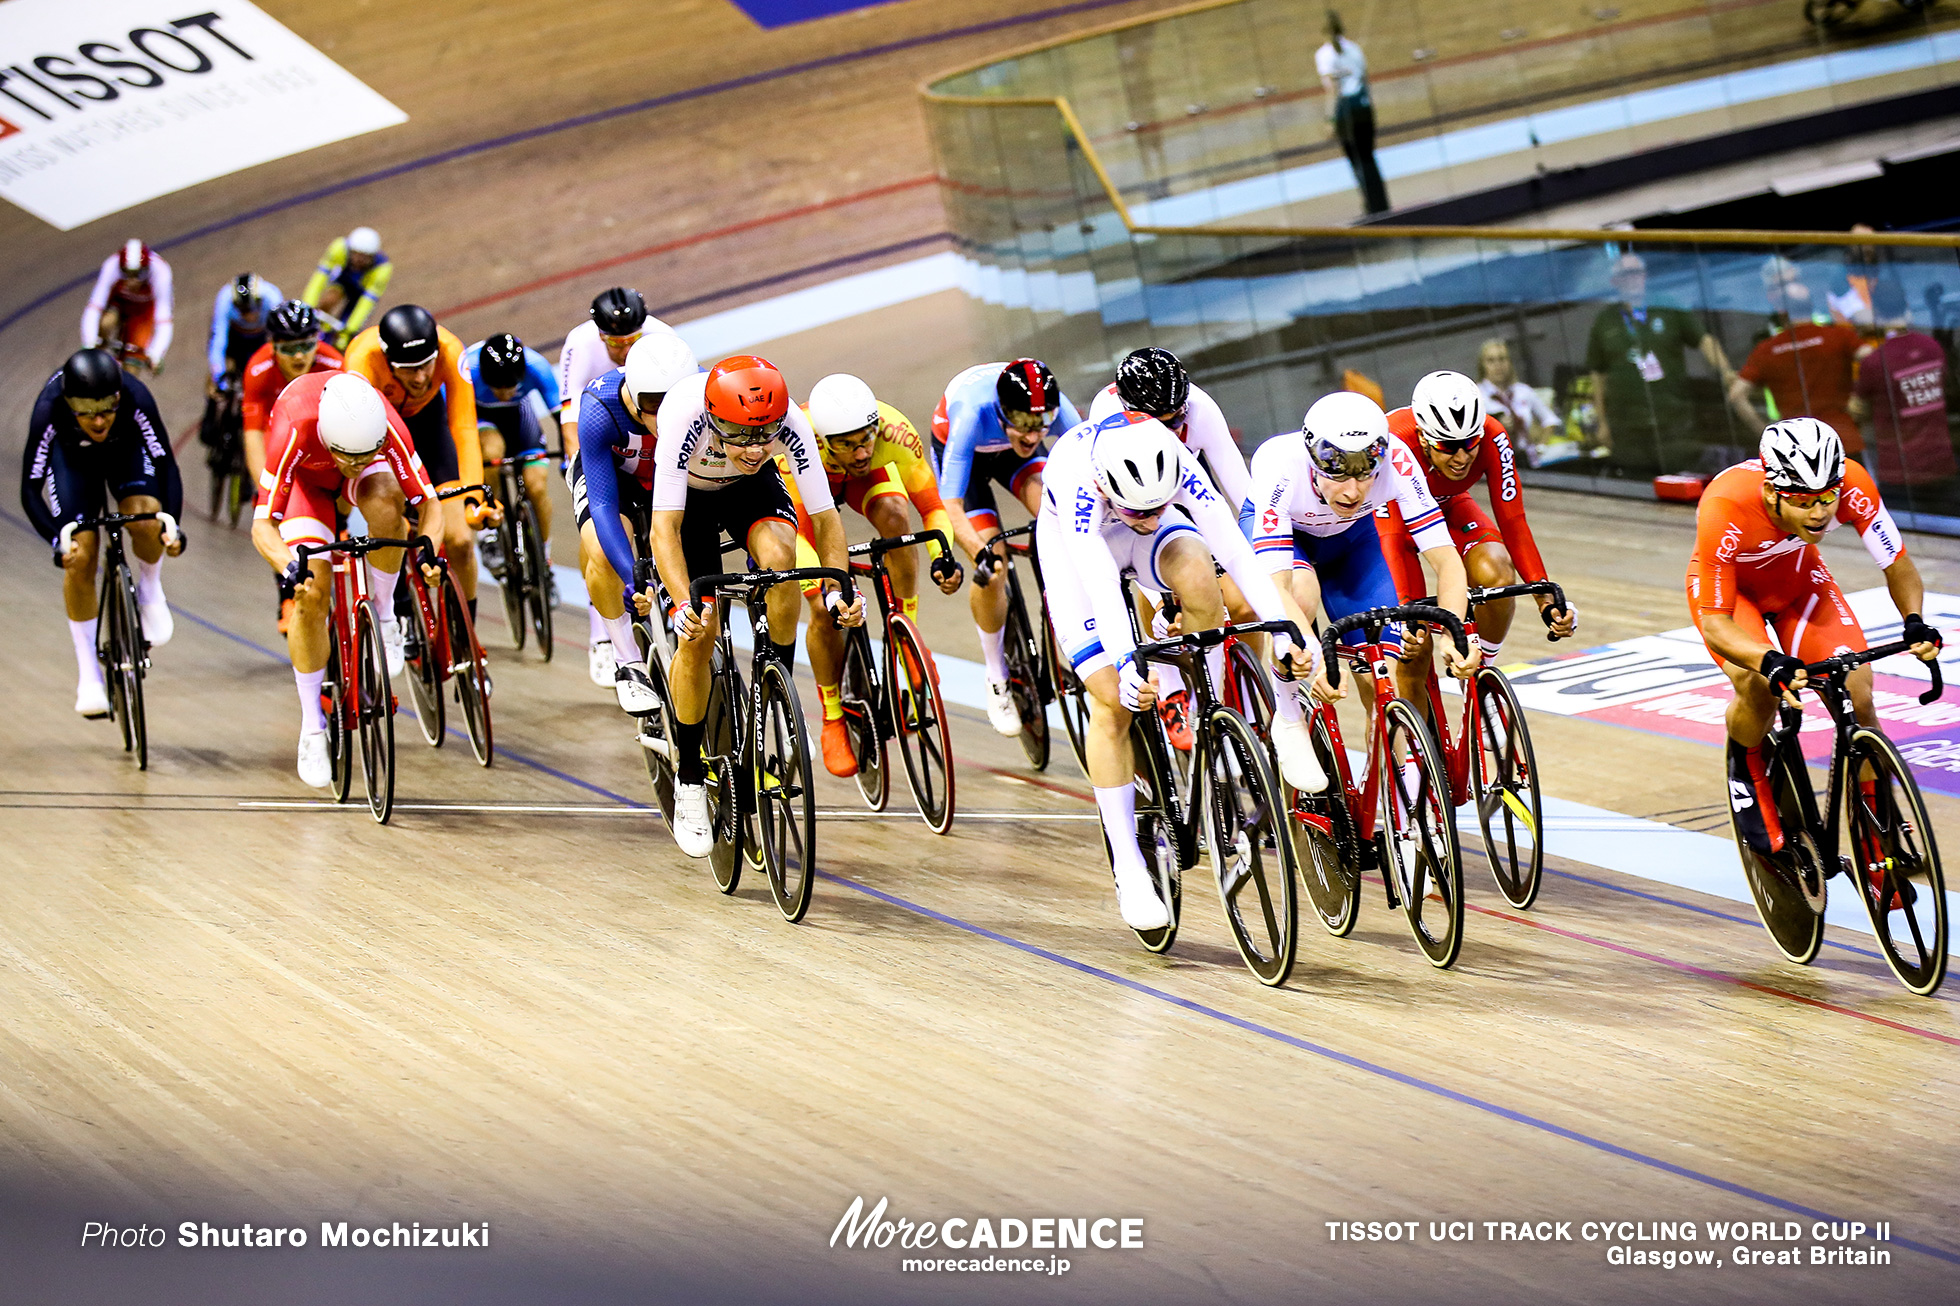 Scratch Race / Men's Omnium / TISSOT UCI TRACK CYCLING WORLD CUP II, Glasgow, Great Britain